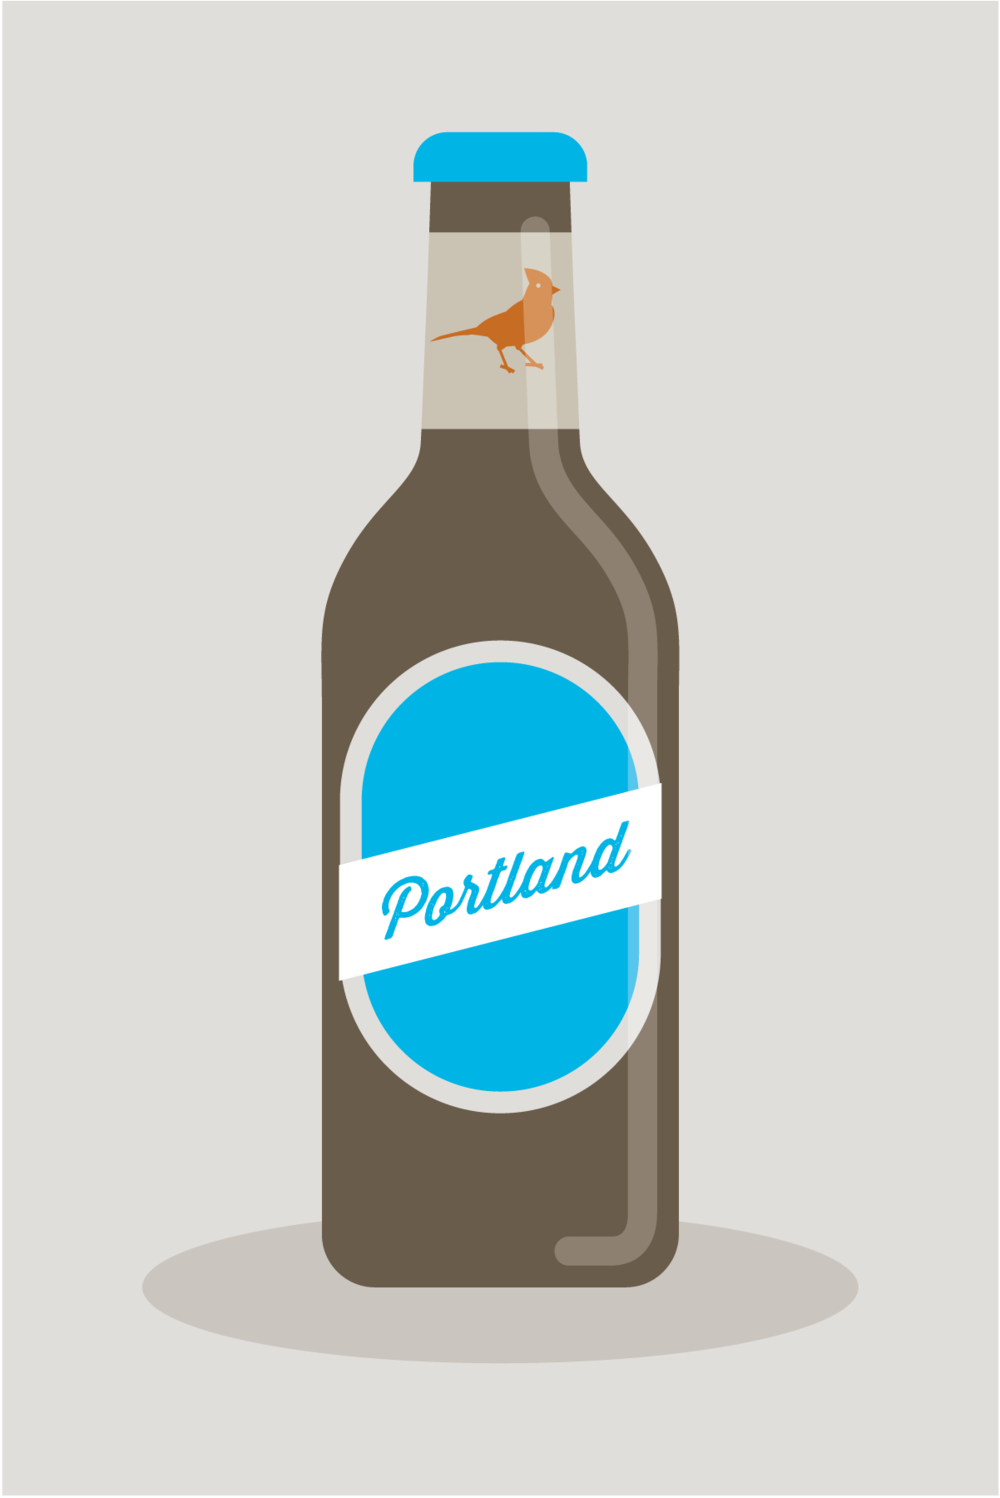 Portland beer illustration by Mark Mularz of Fetch Design.